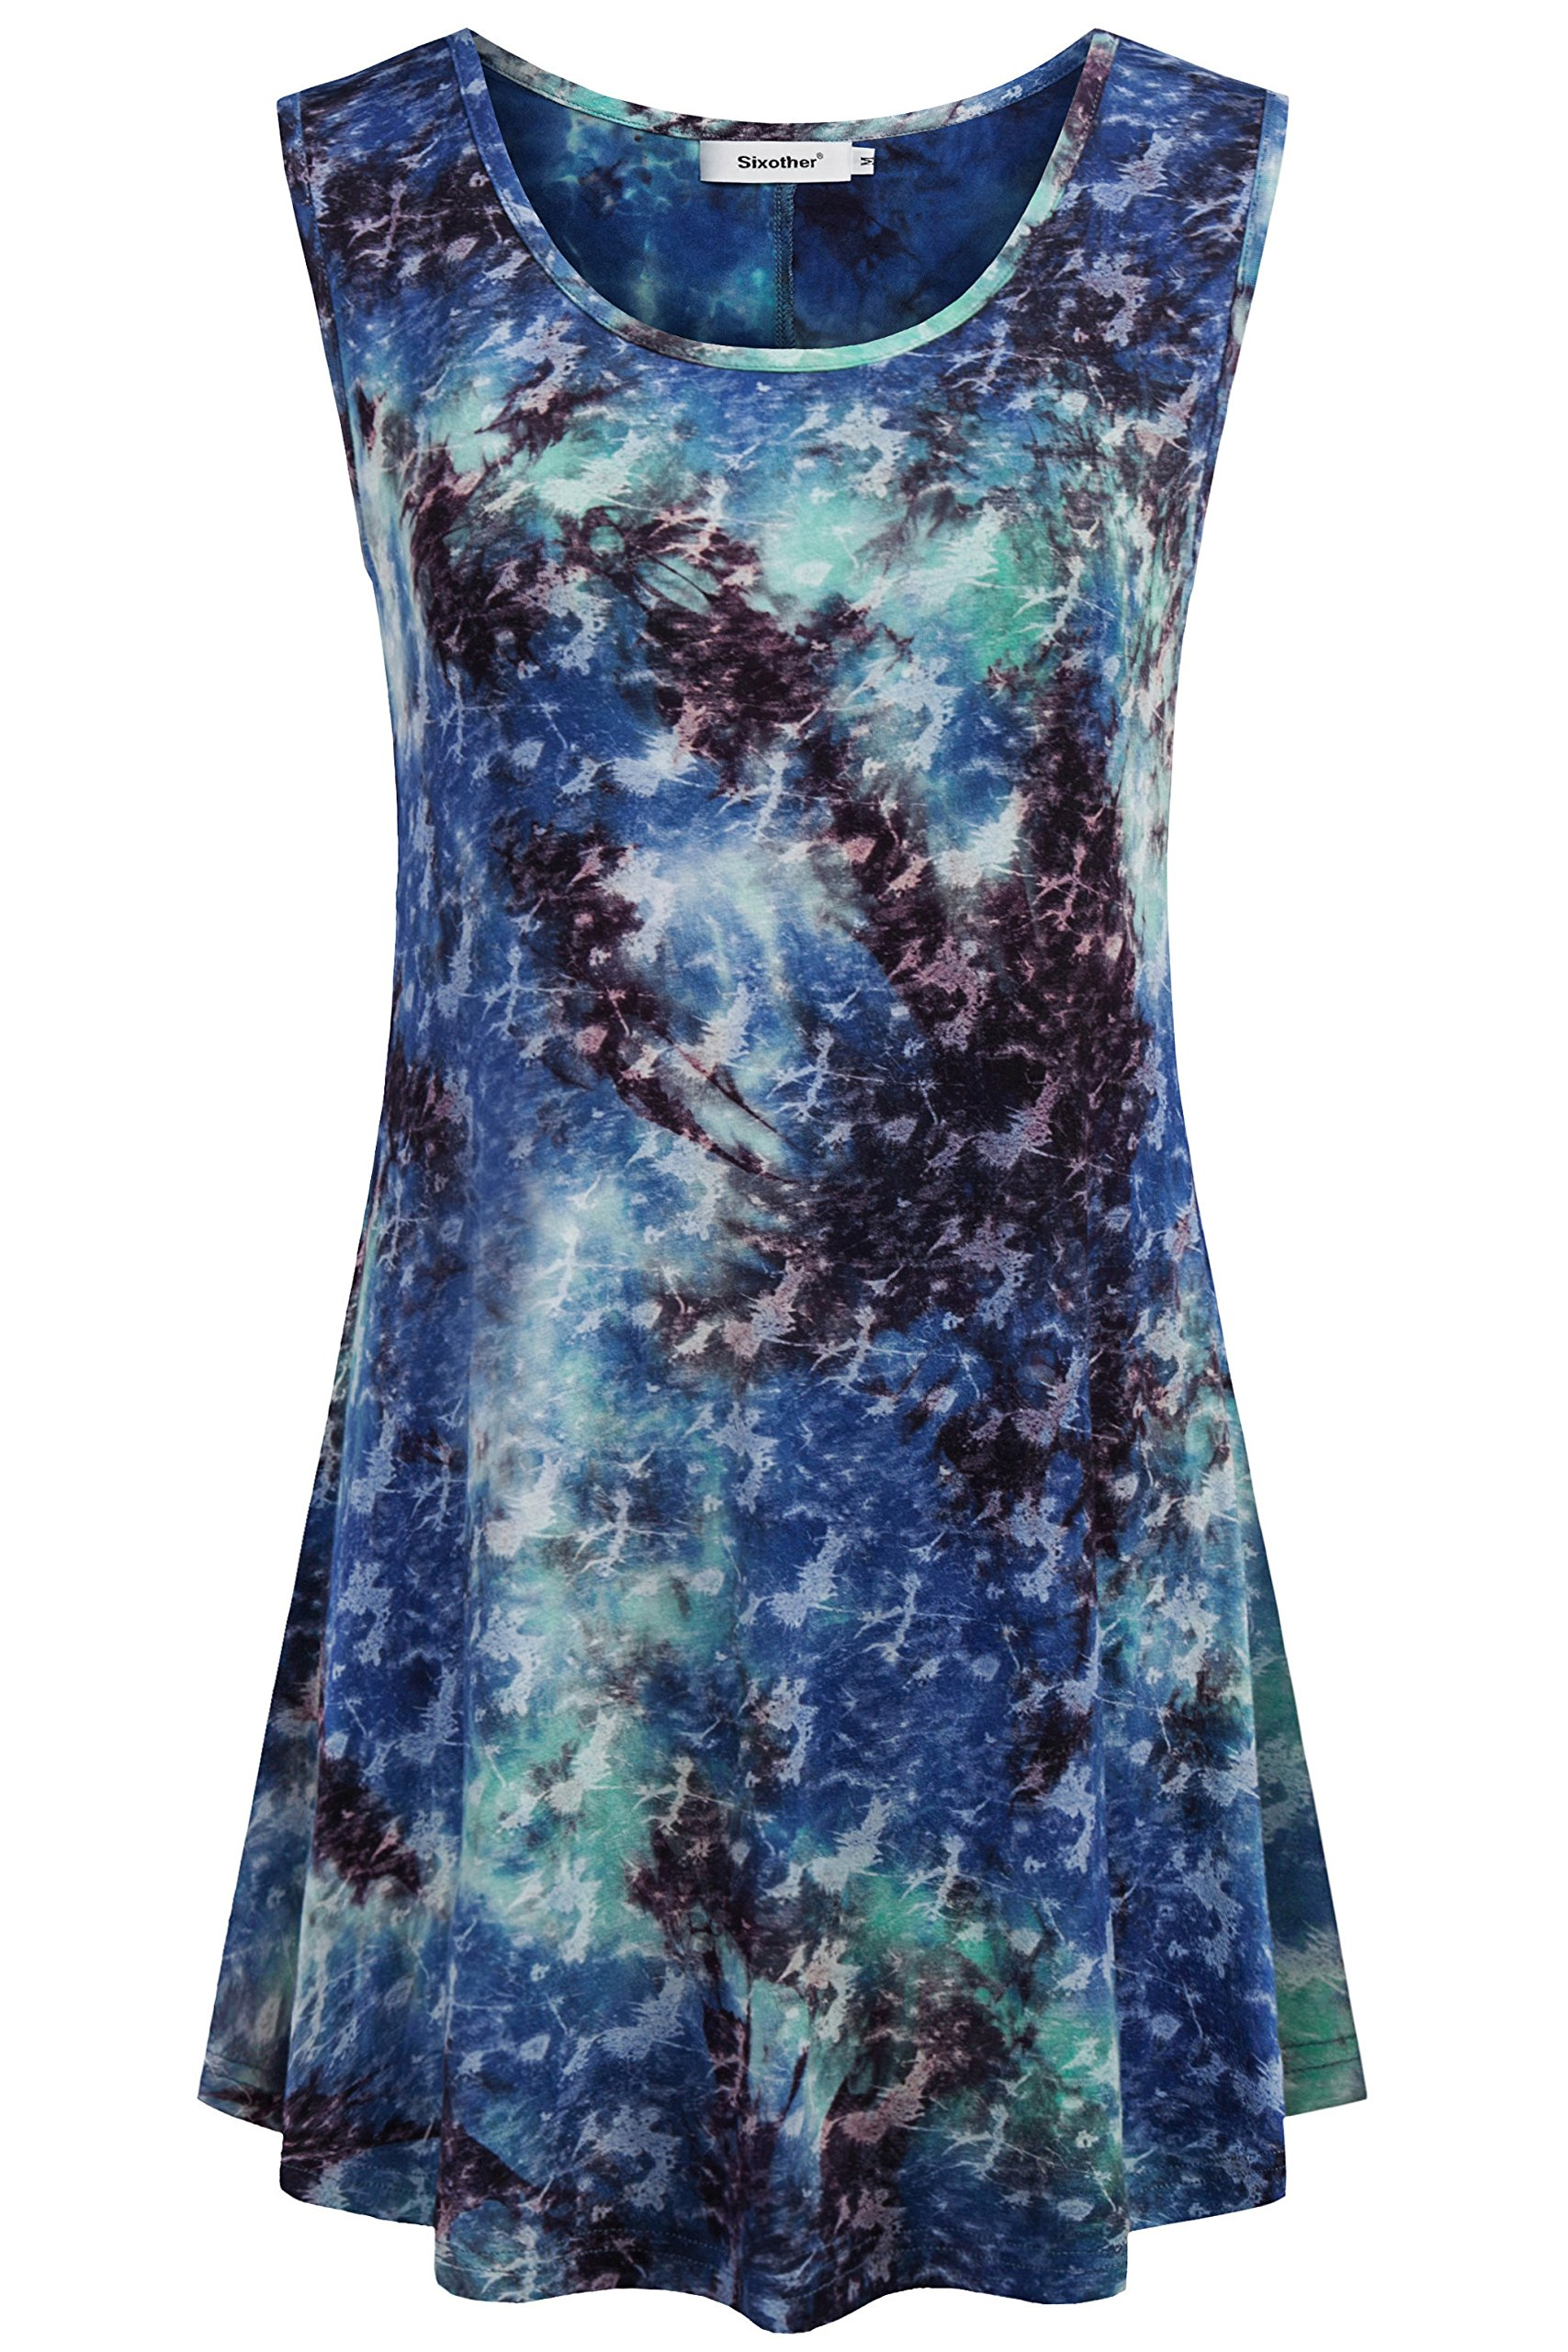 Sixother Cami Tank, Sleeveless Cool Tunics for Summer Scoop Neck Tops for Women Tie Dye Shirts Plus Size Business Blouses for Woman M